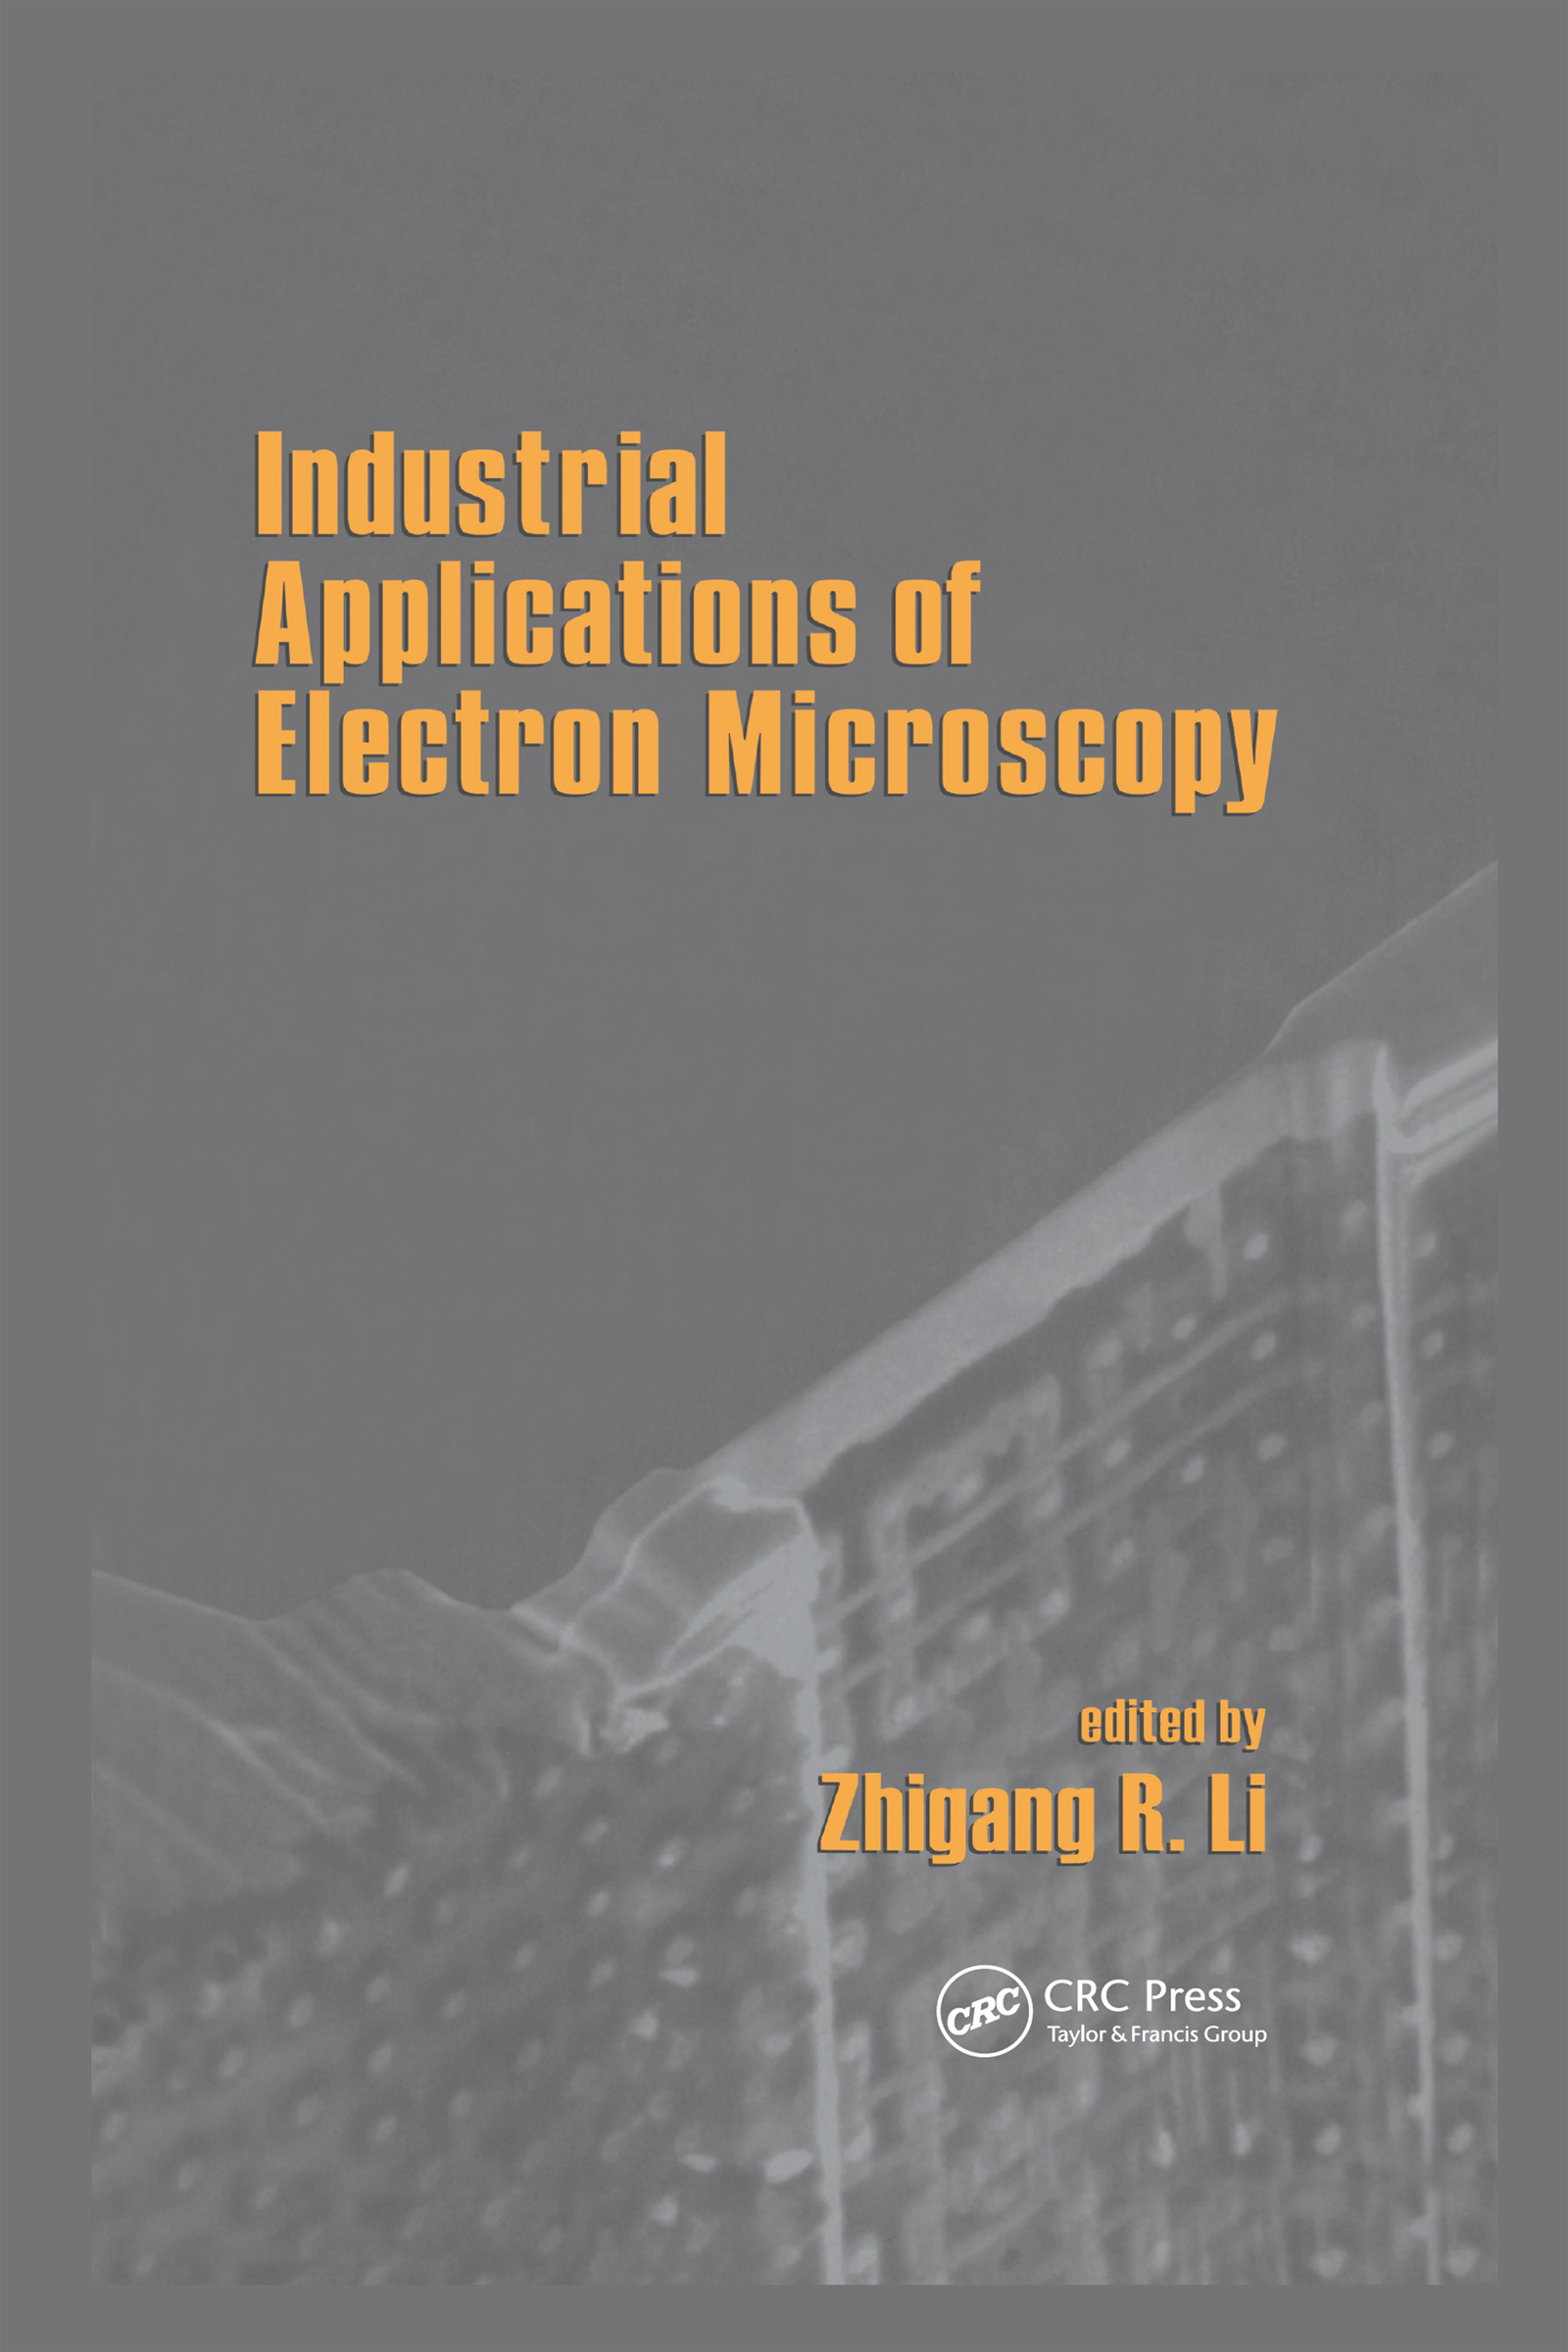 Electron Microscopy for the Pulp and Paper Industry